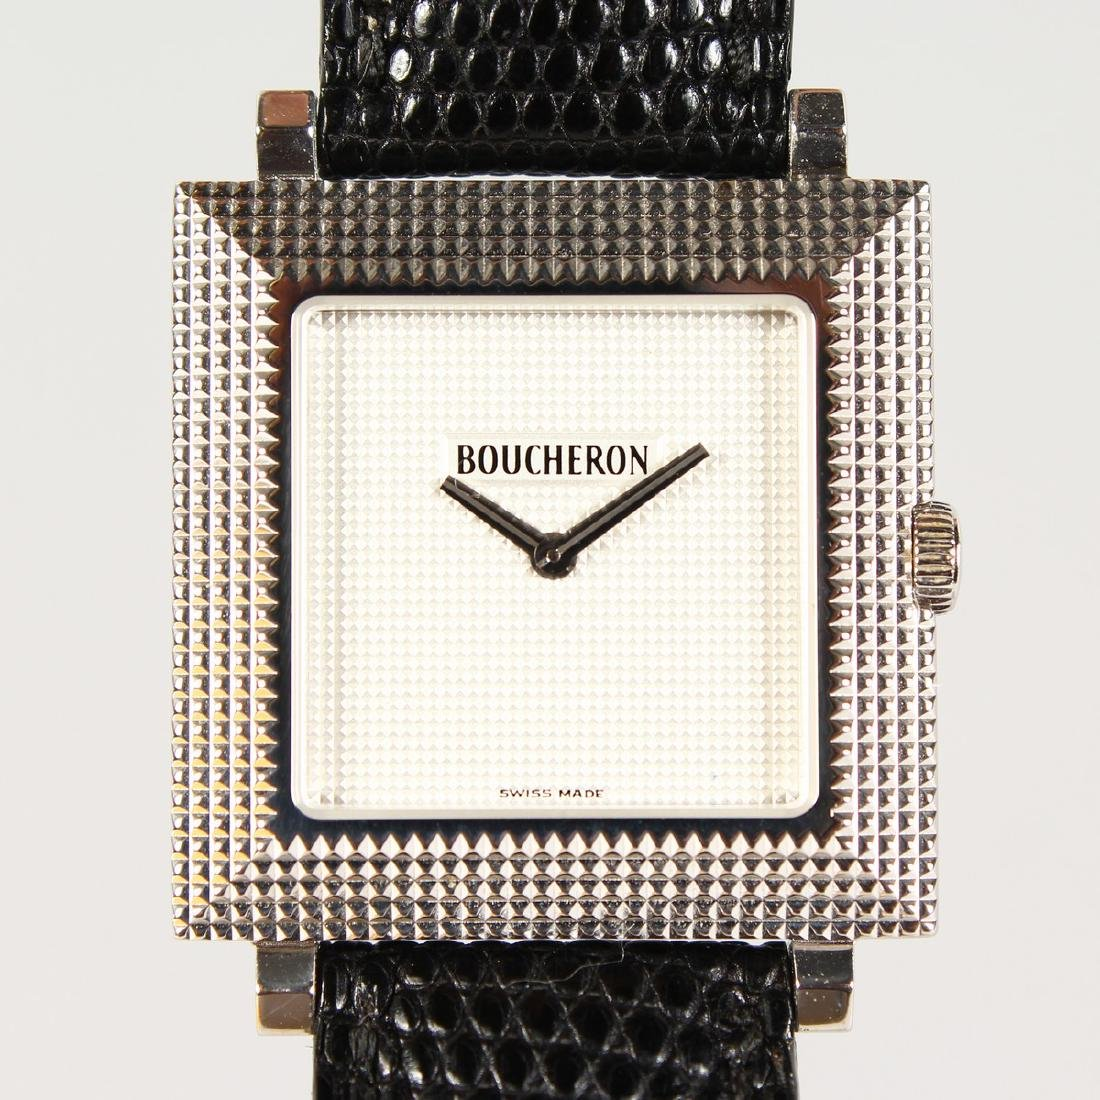 AN 18CT GOLD BOUCHERON WRISTWATCH, with leather strap,